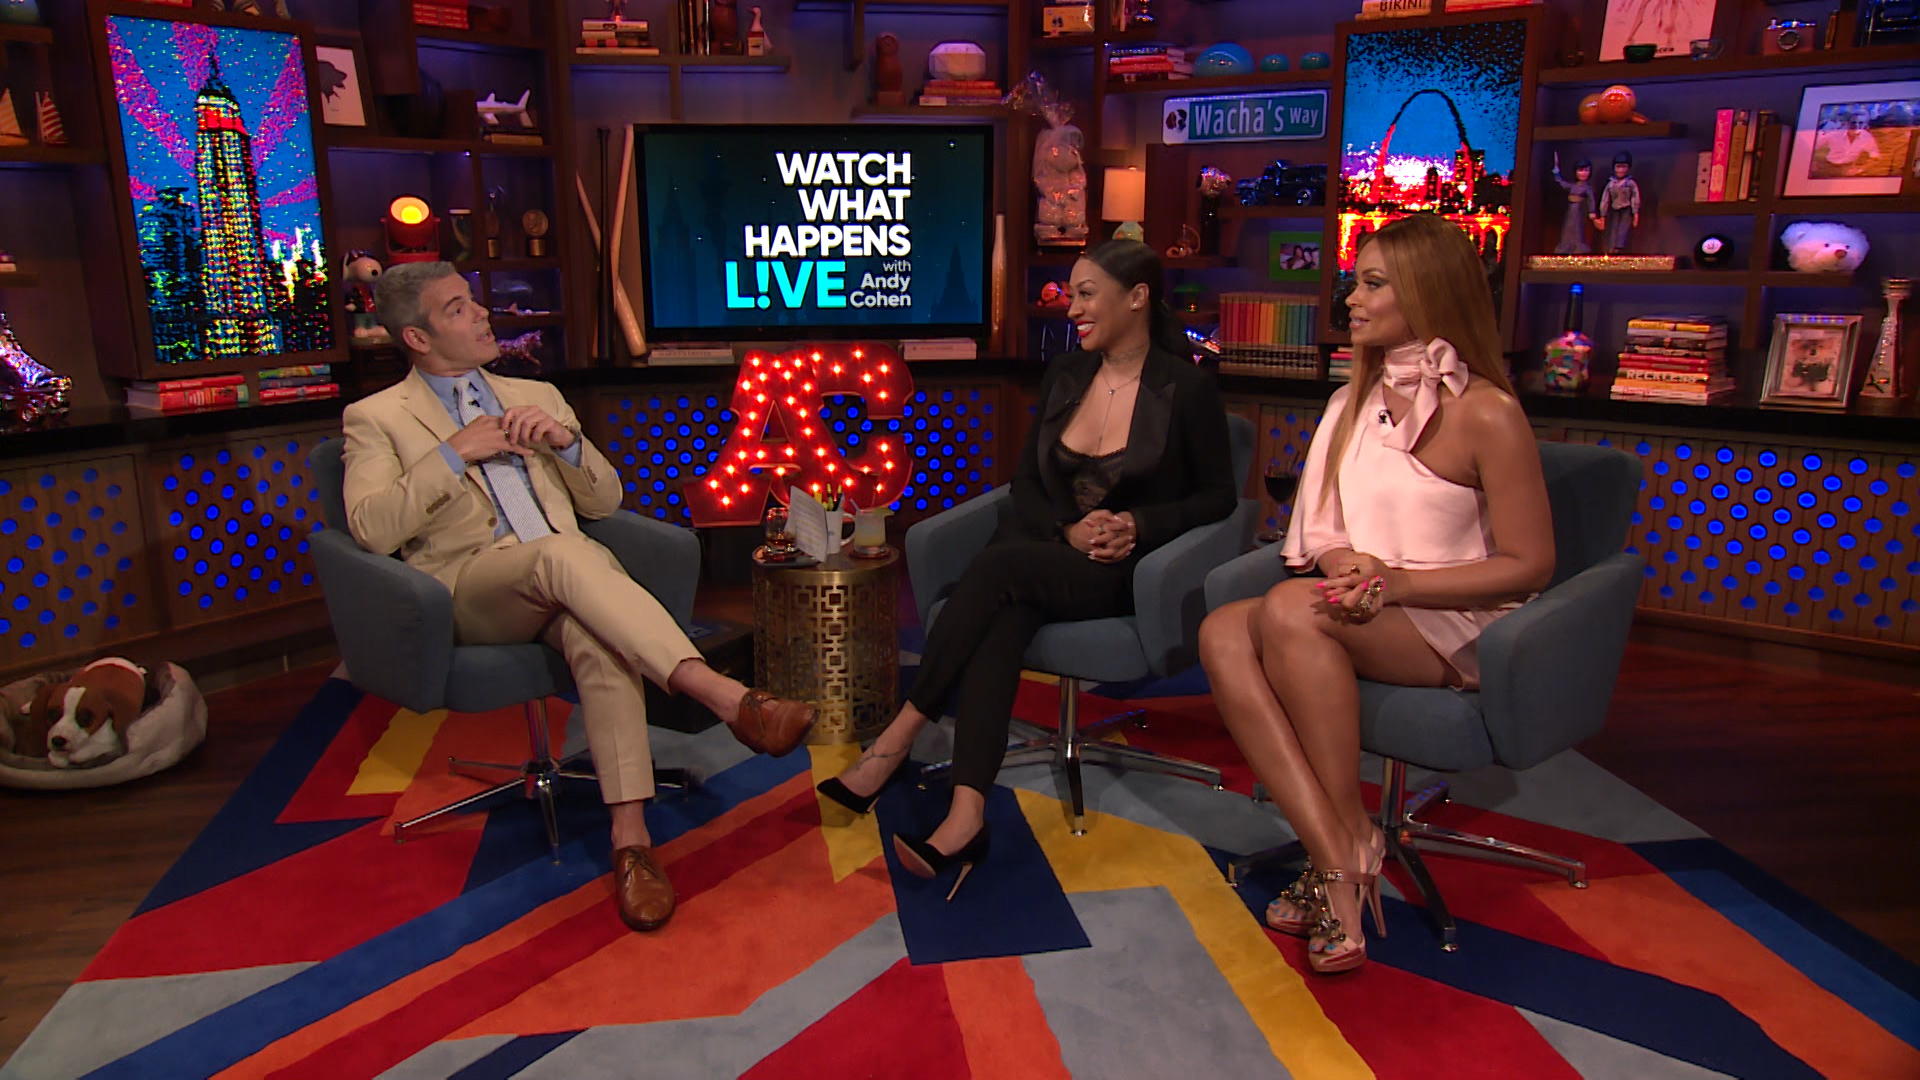 After Show: Gizelle Bryant on Robyn & Juan's Relationship